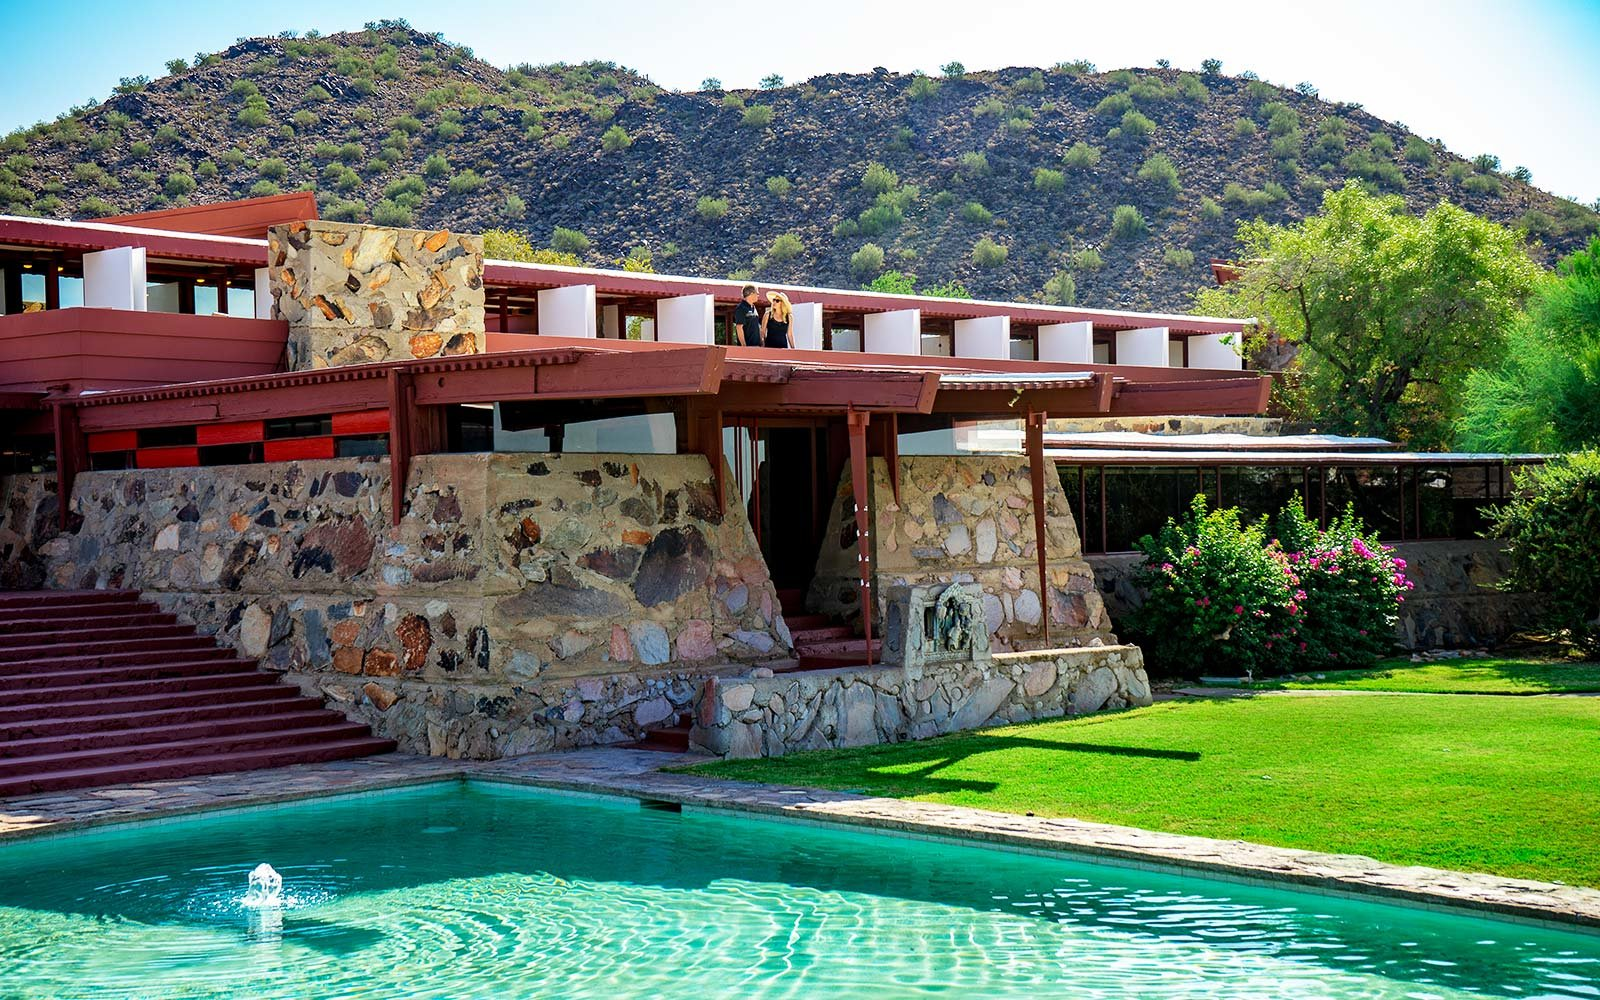 10 Must-See Houses Designed by Master Architect Frank Lloyd Wright